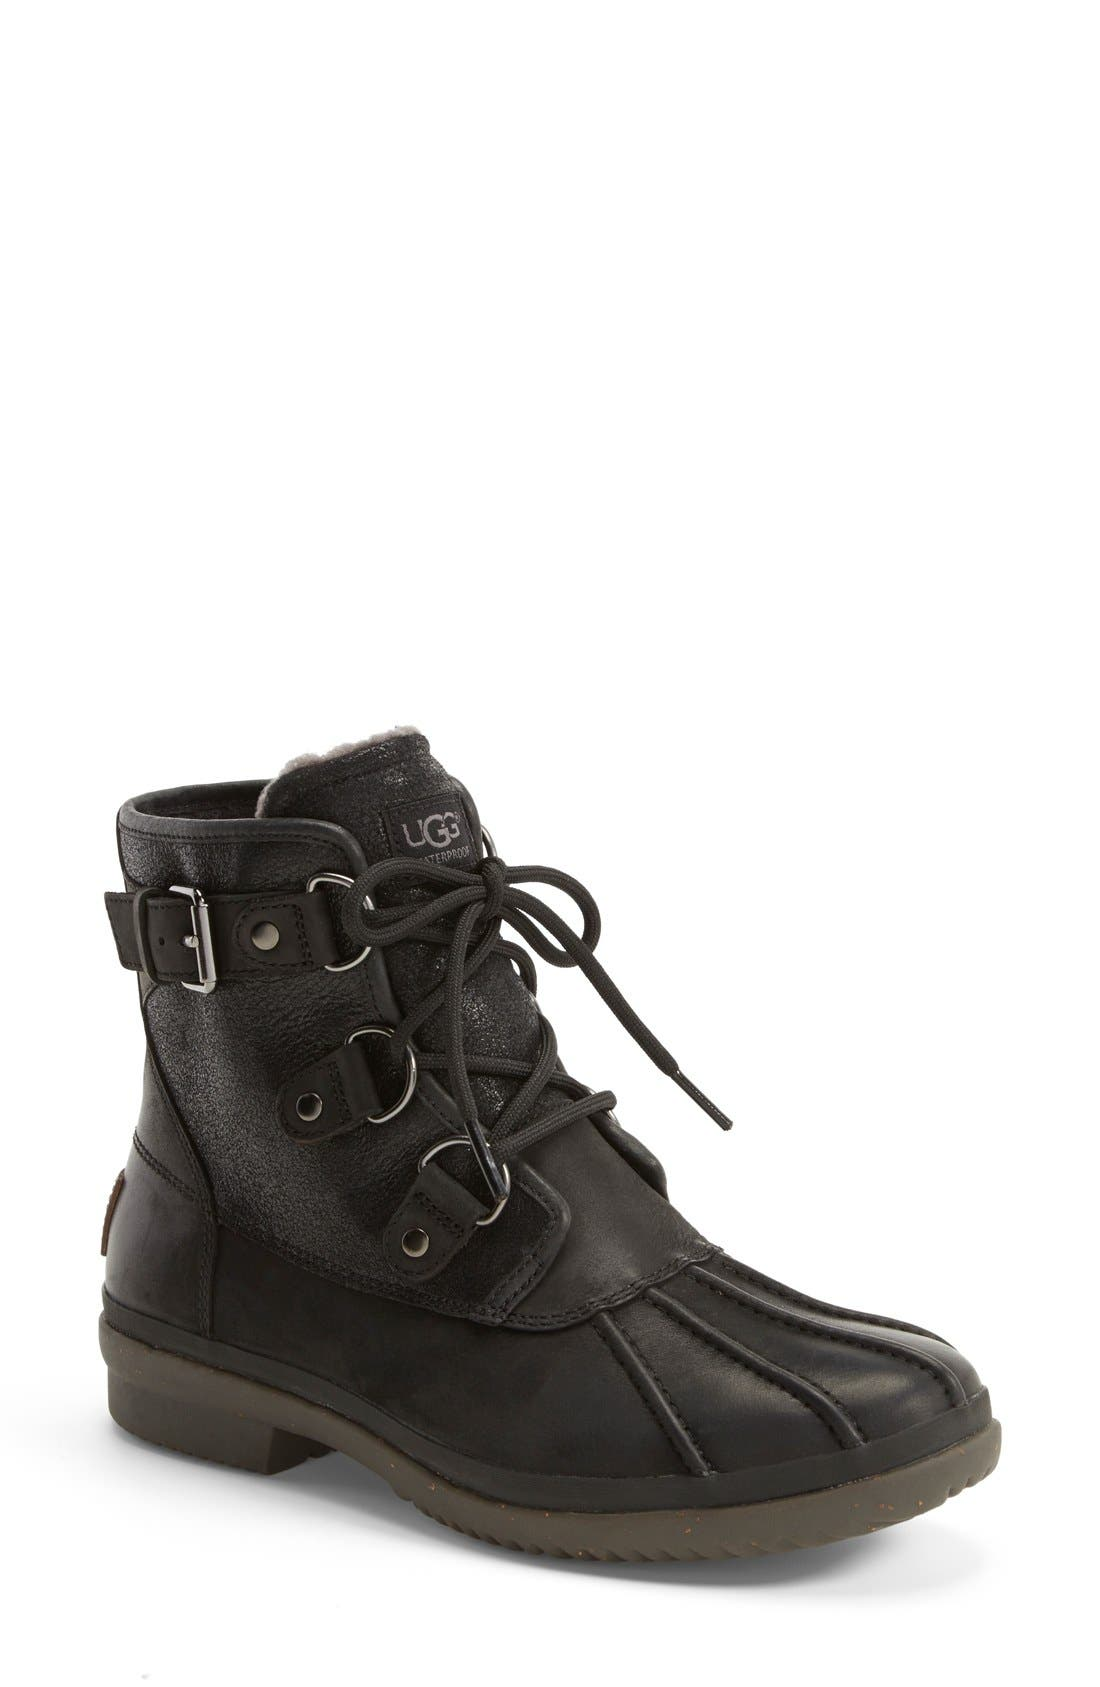 Main Image - UGG® Cecile Waterproof Boot (Women)